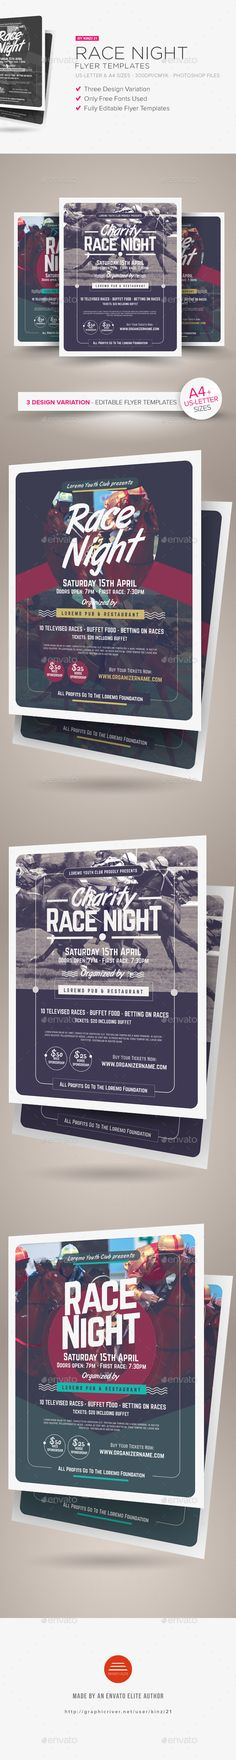 Race #Night #Flyer Templates - Miscellaneous #Events Download here: https://graphicriver.net/item/race-night-flyer-templates/19540543?ref=alena994